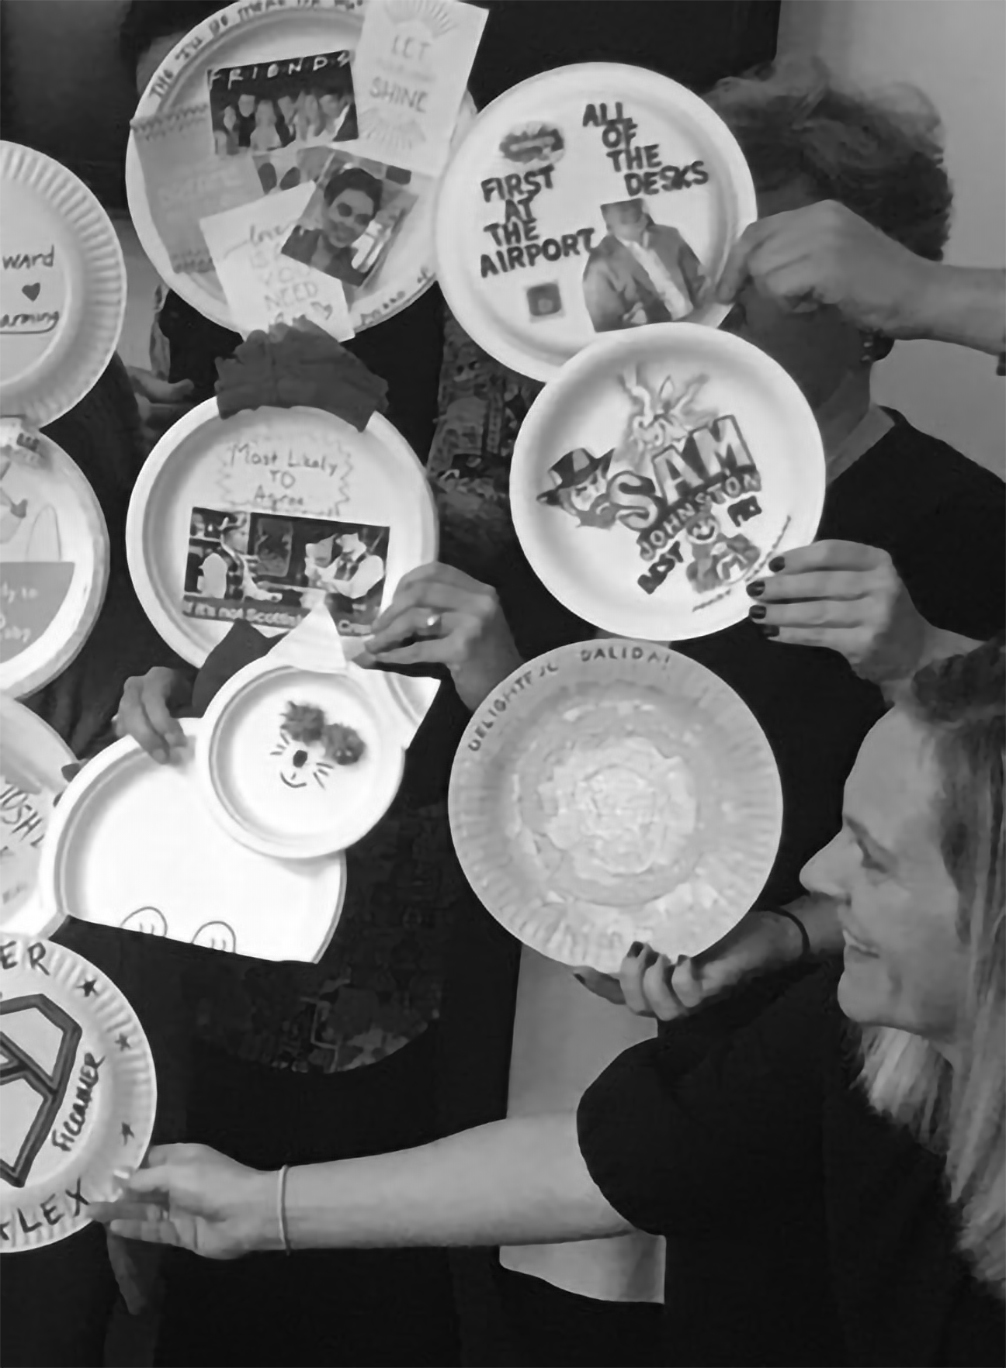 FiComm paper plate awards